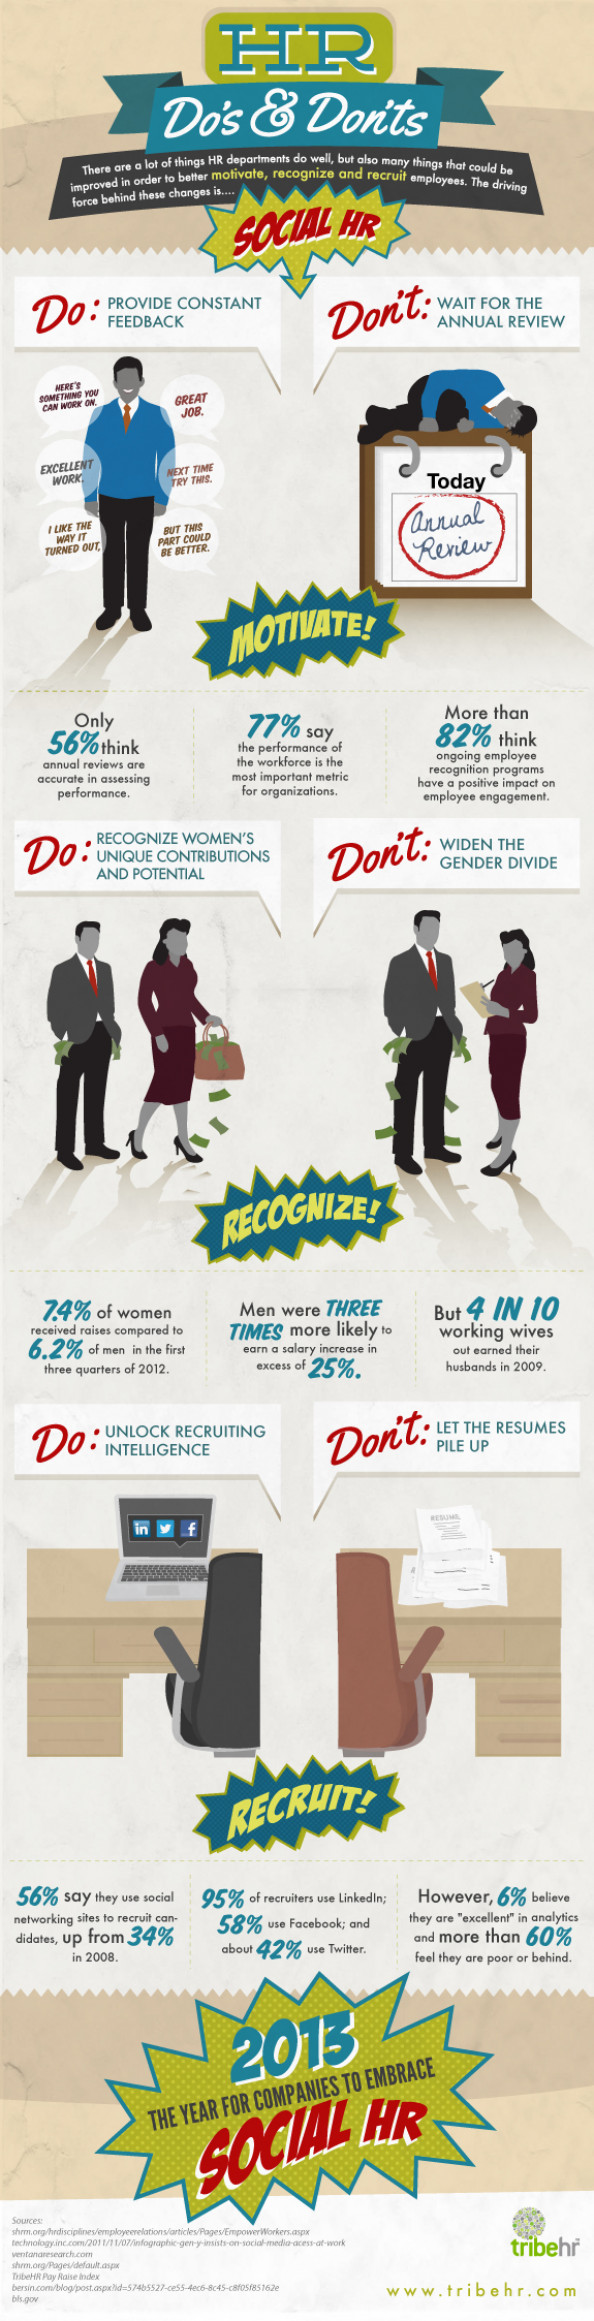 HR Do&#039;s &amp; Don&#039;ts Infographic